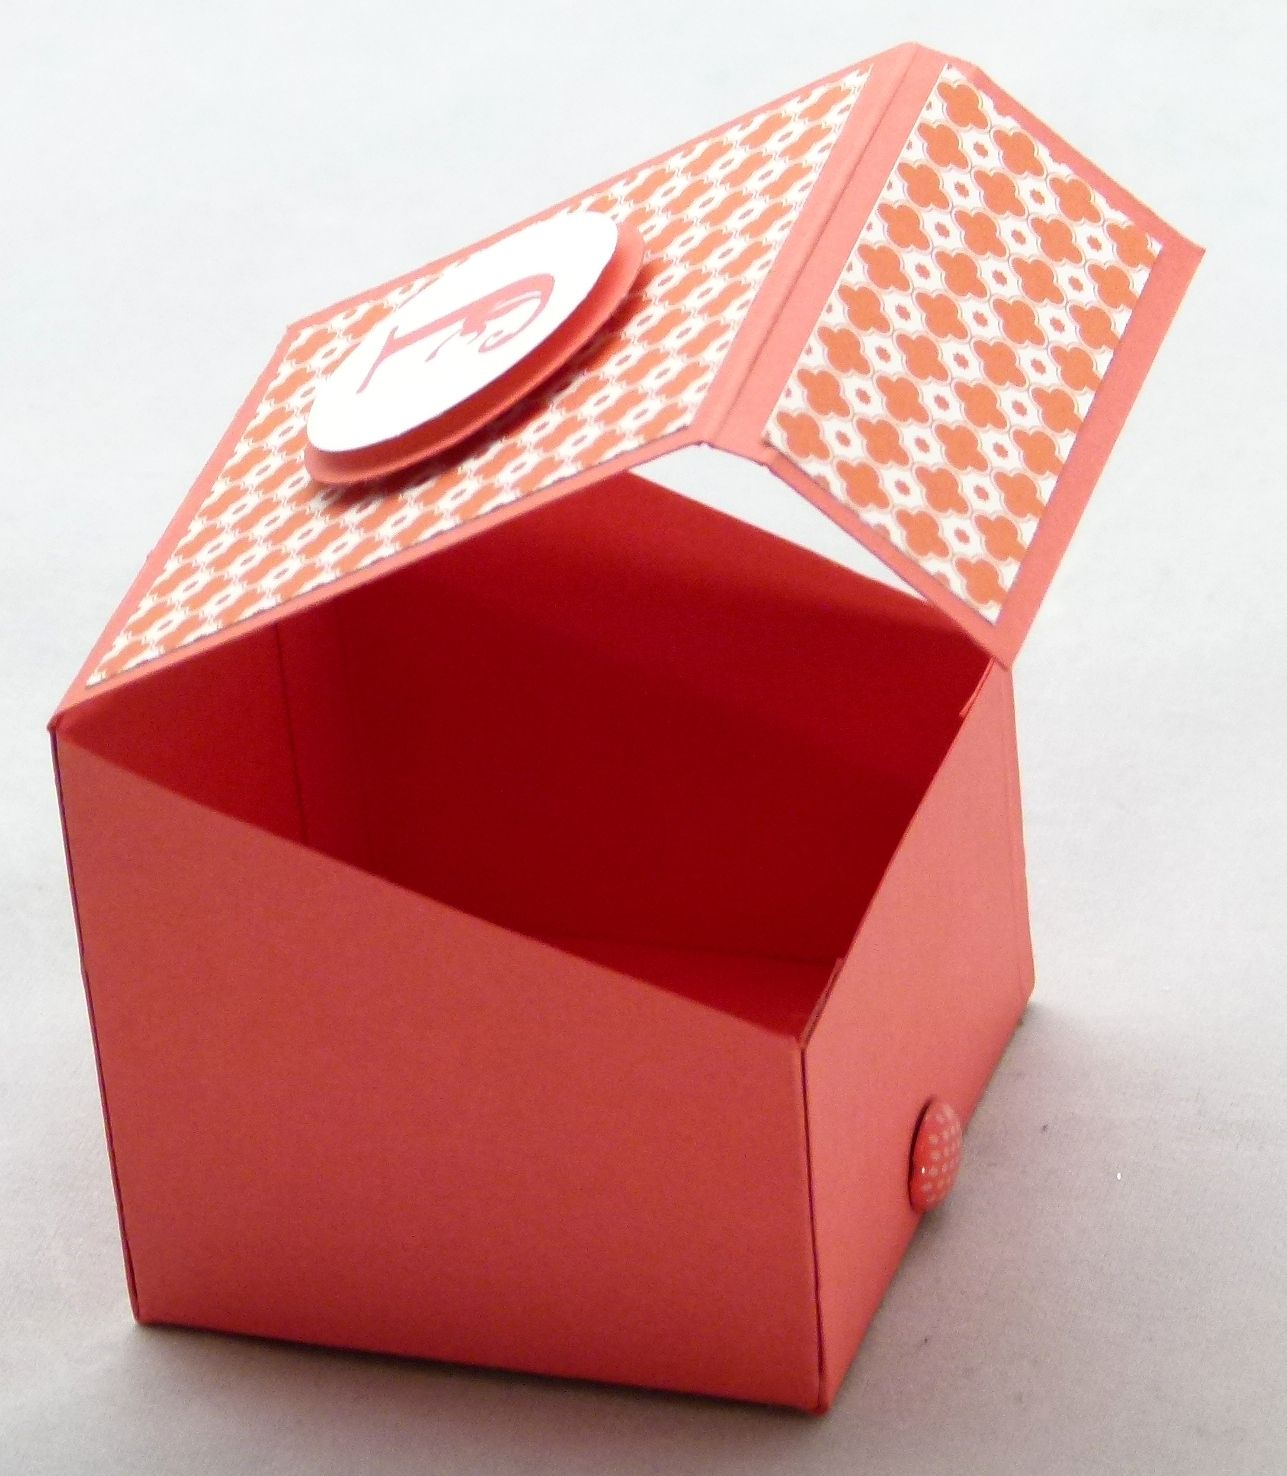 Decorative Boxes Uk The Box Master's Kit  Box Tutorials And Gift